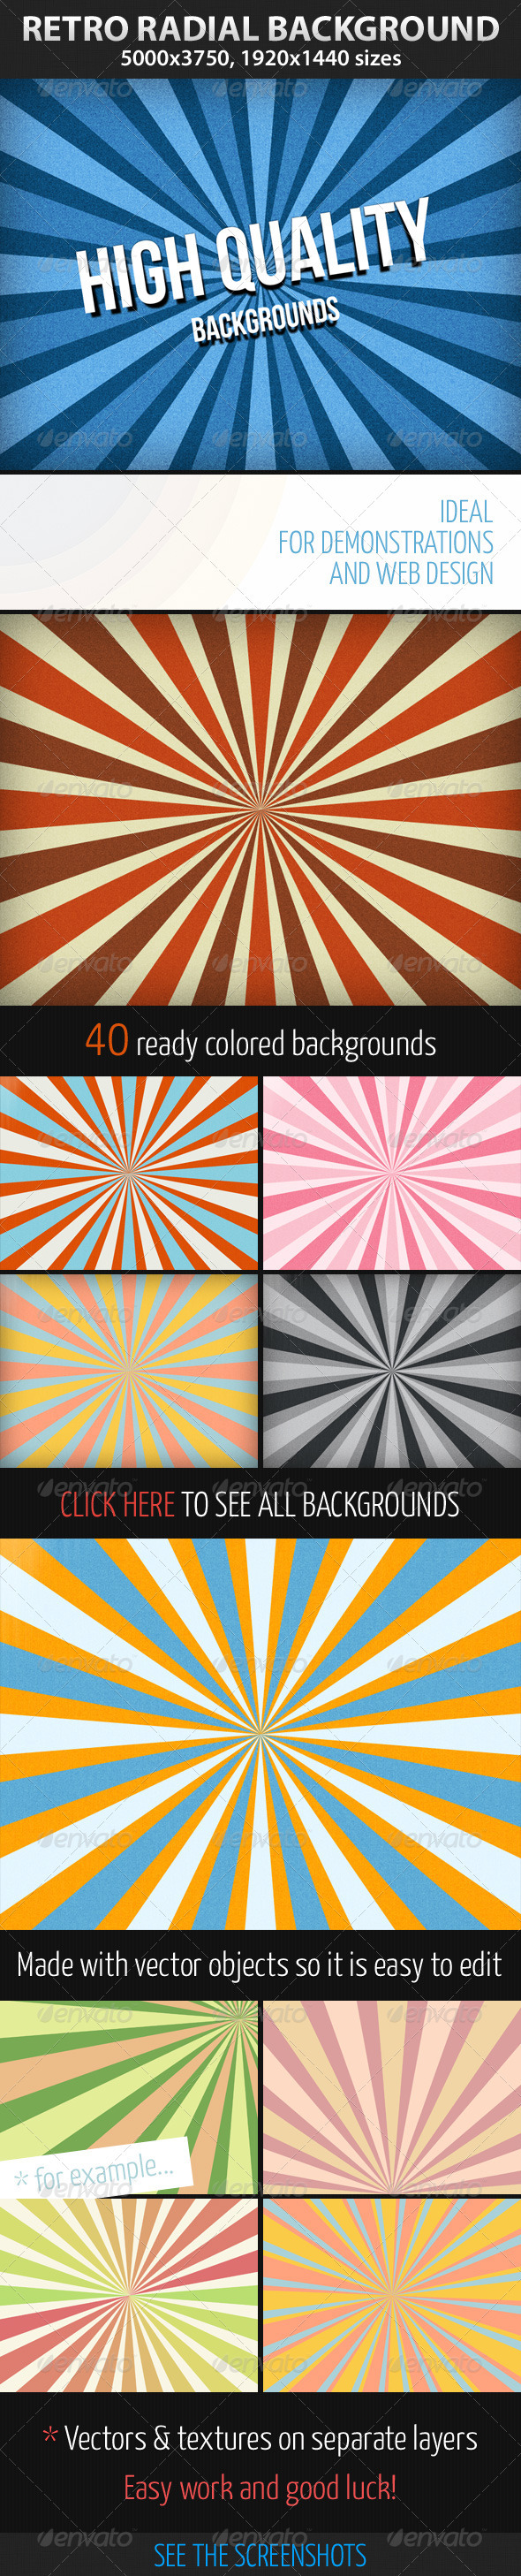 Retro Radial Background - Backgrounds Graphics